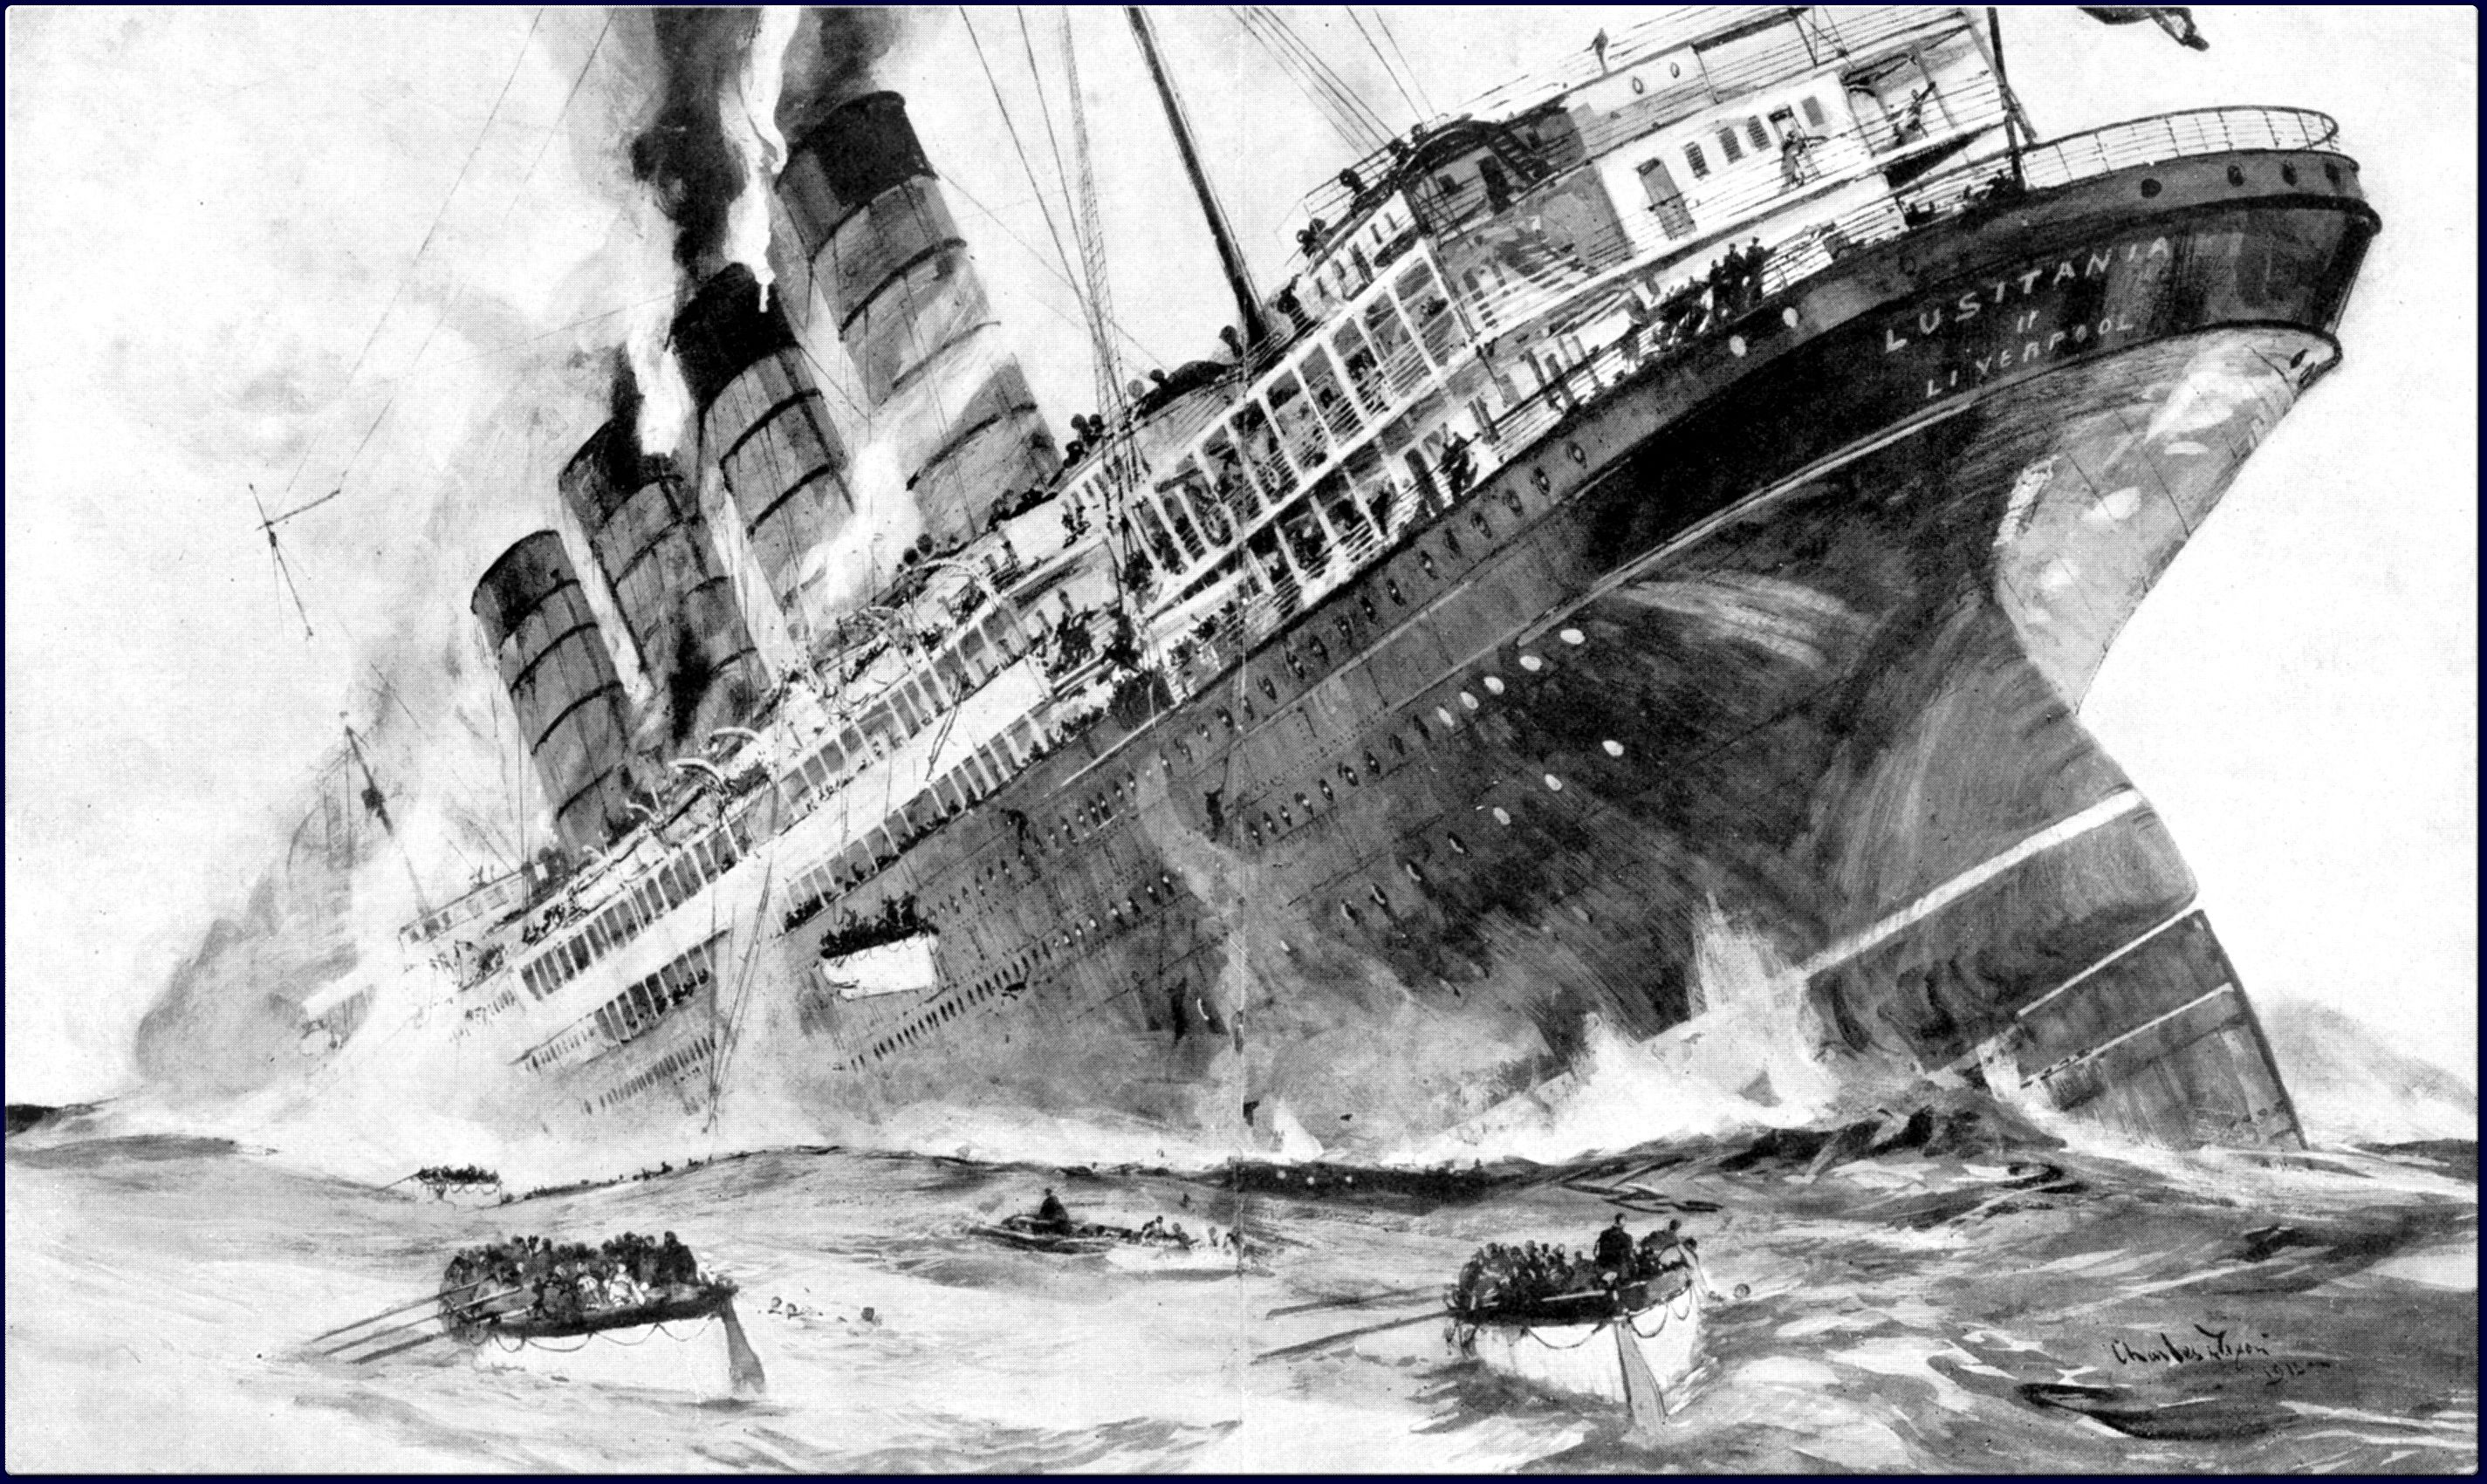 Rms lusitania wreck rms lusitania wreck quotes - Illustration Of The Sinking Of The Lusitania In 1915